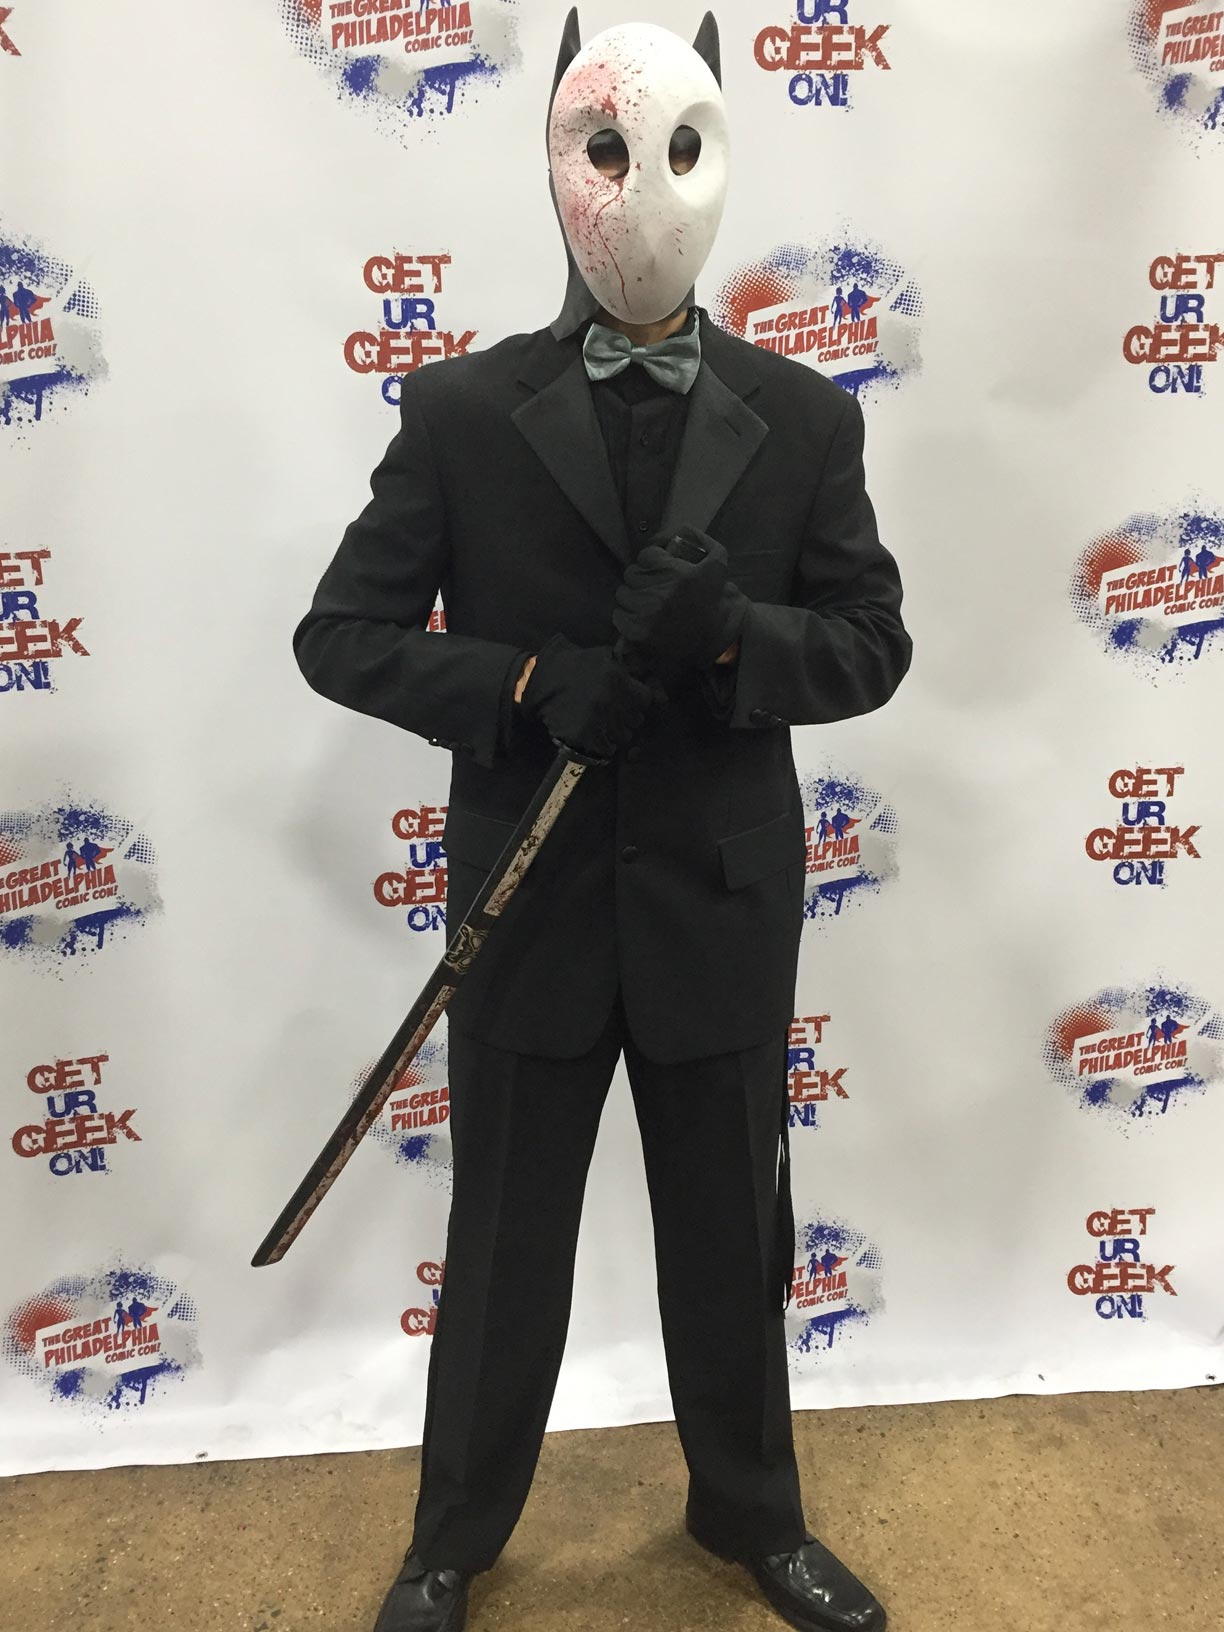 The Great Philadelphia Comic Con 2017 Cosplay Day 3